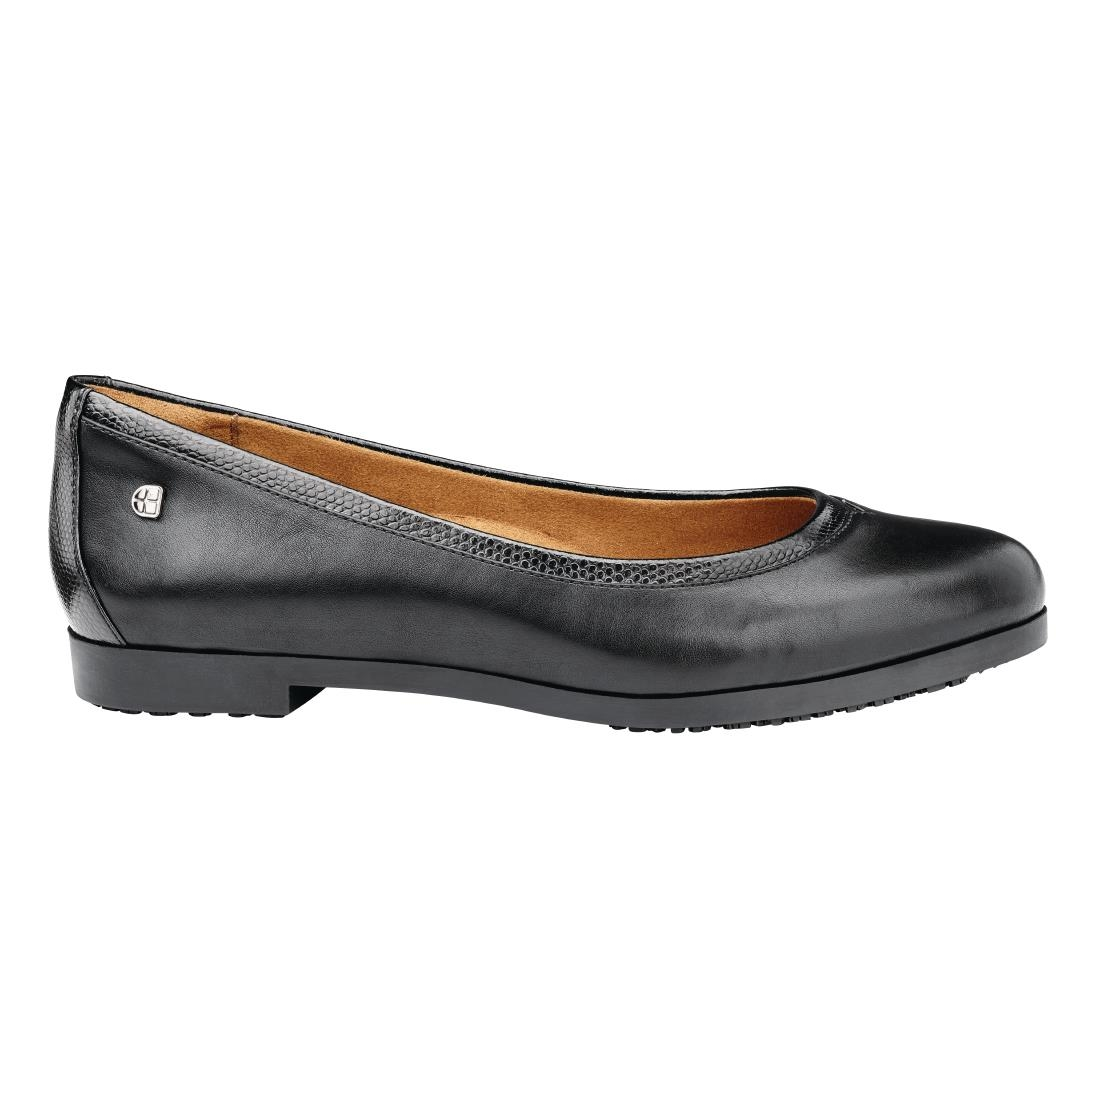 Click to view product details and reviews for Shoes For Crews Womens Reese Slip On Shoes Black Size 35.